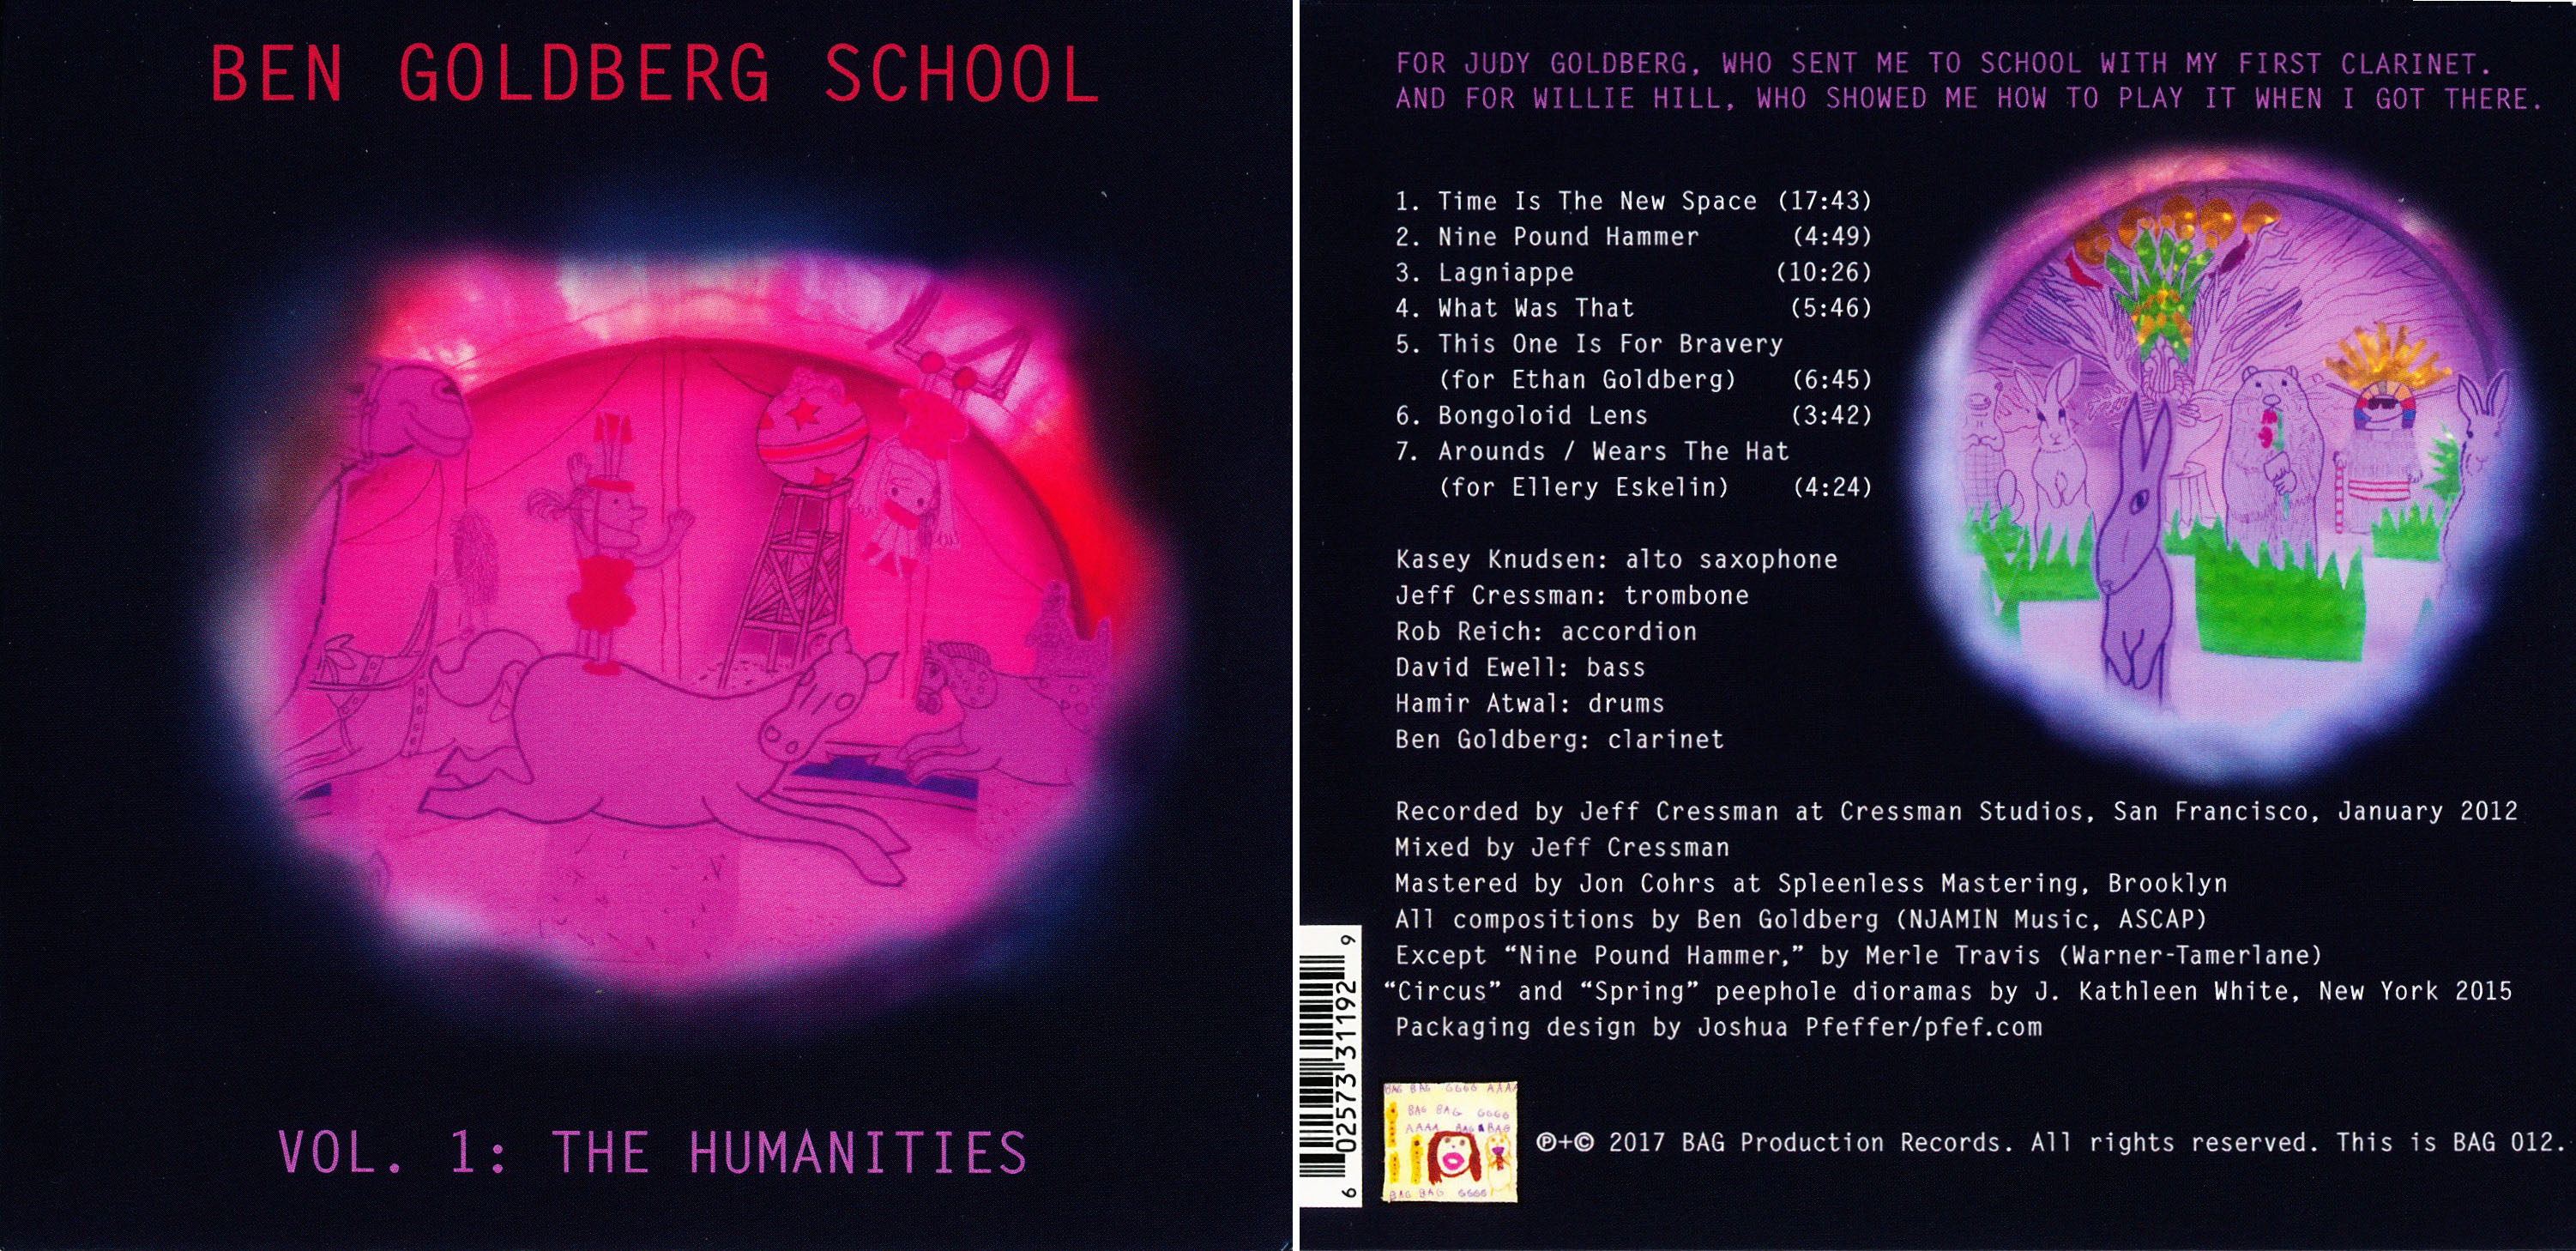 Ben Goldberg School | Vol. 1: the Humanities